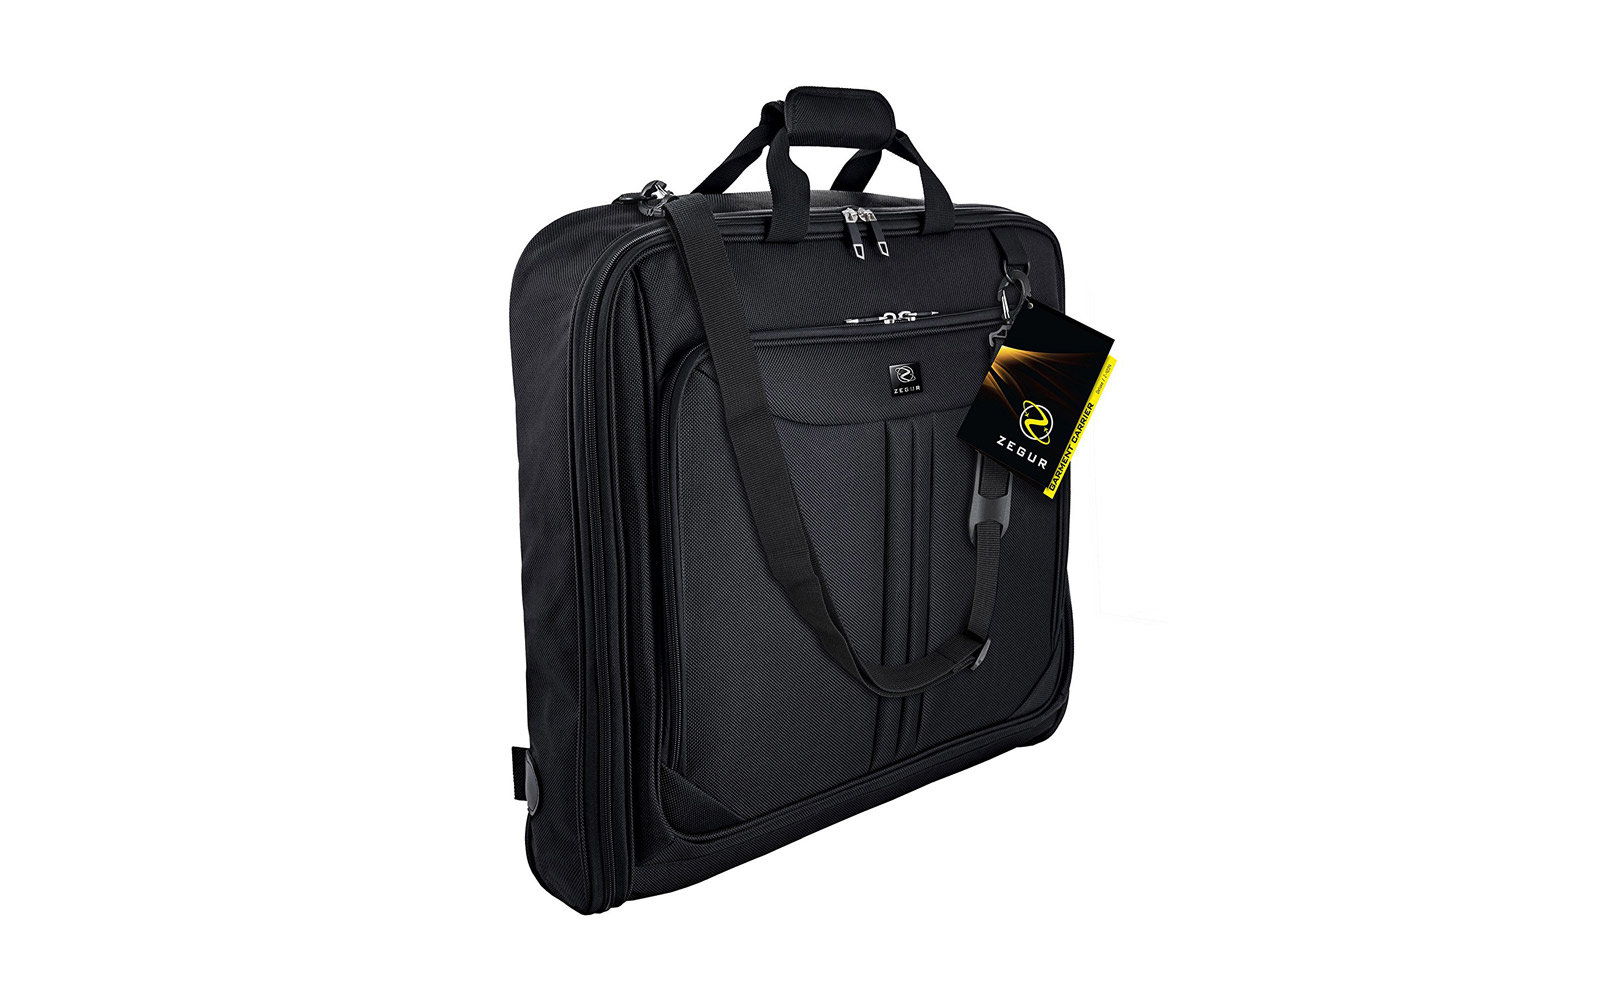 The Best Garment Bags for Travel   Travel + Leisure dc30f943ab